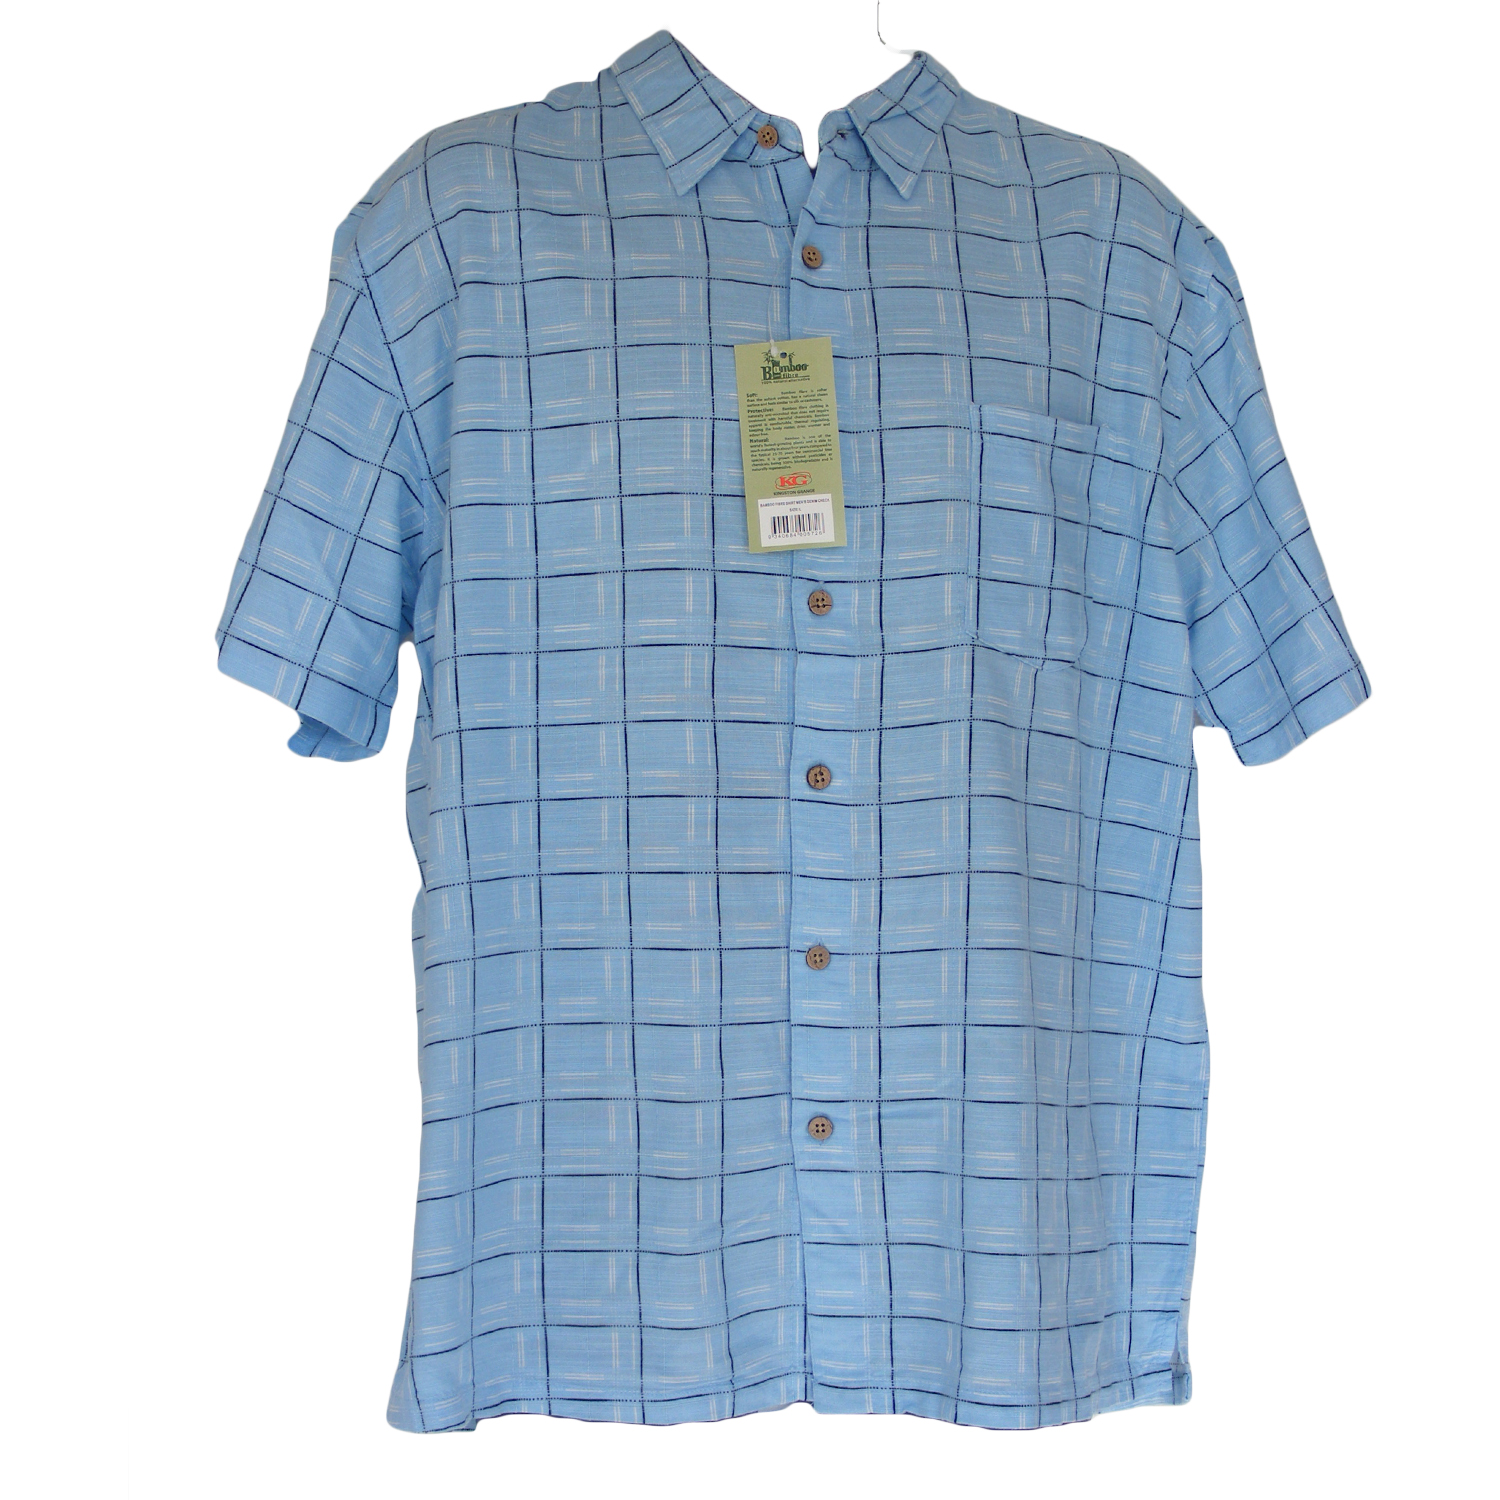 Men's Blue Check Bamboo Shirt - Hooked On Bamboo